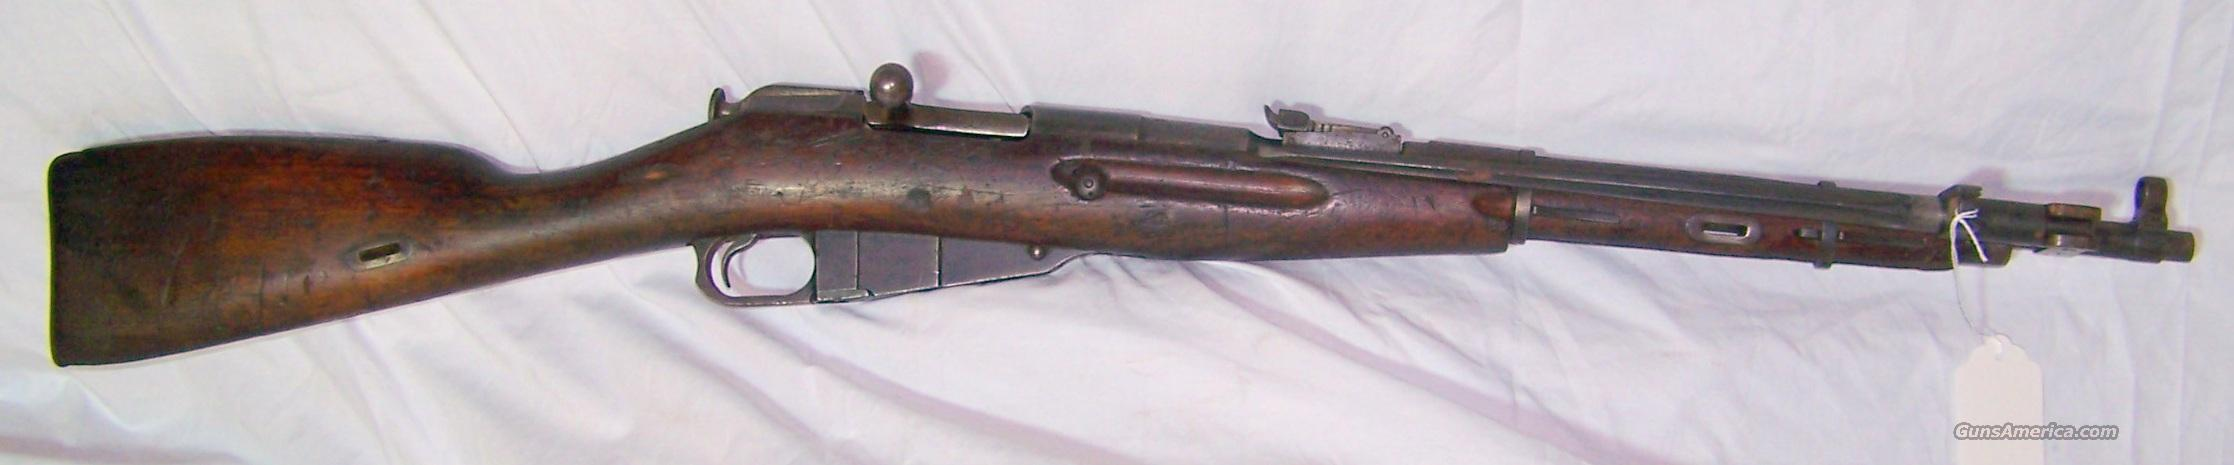 1955 Chinese T53 mosin nagant  Guns > Rifles > Mosin-Nagant Rifles/Carbines